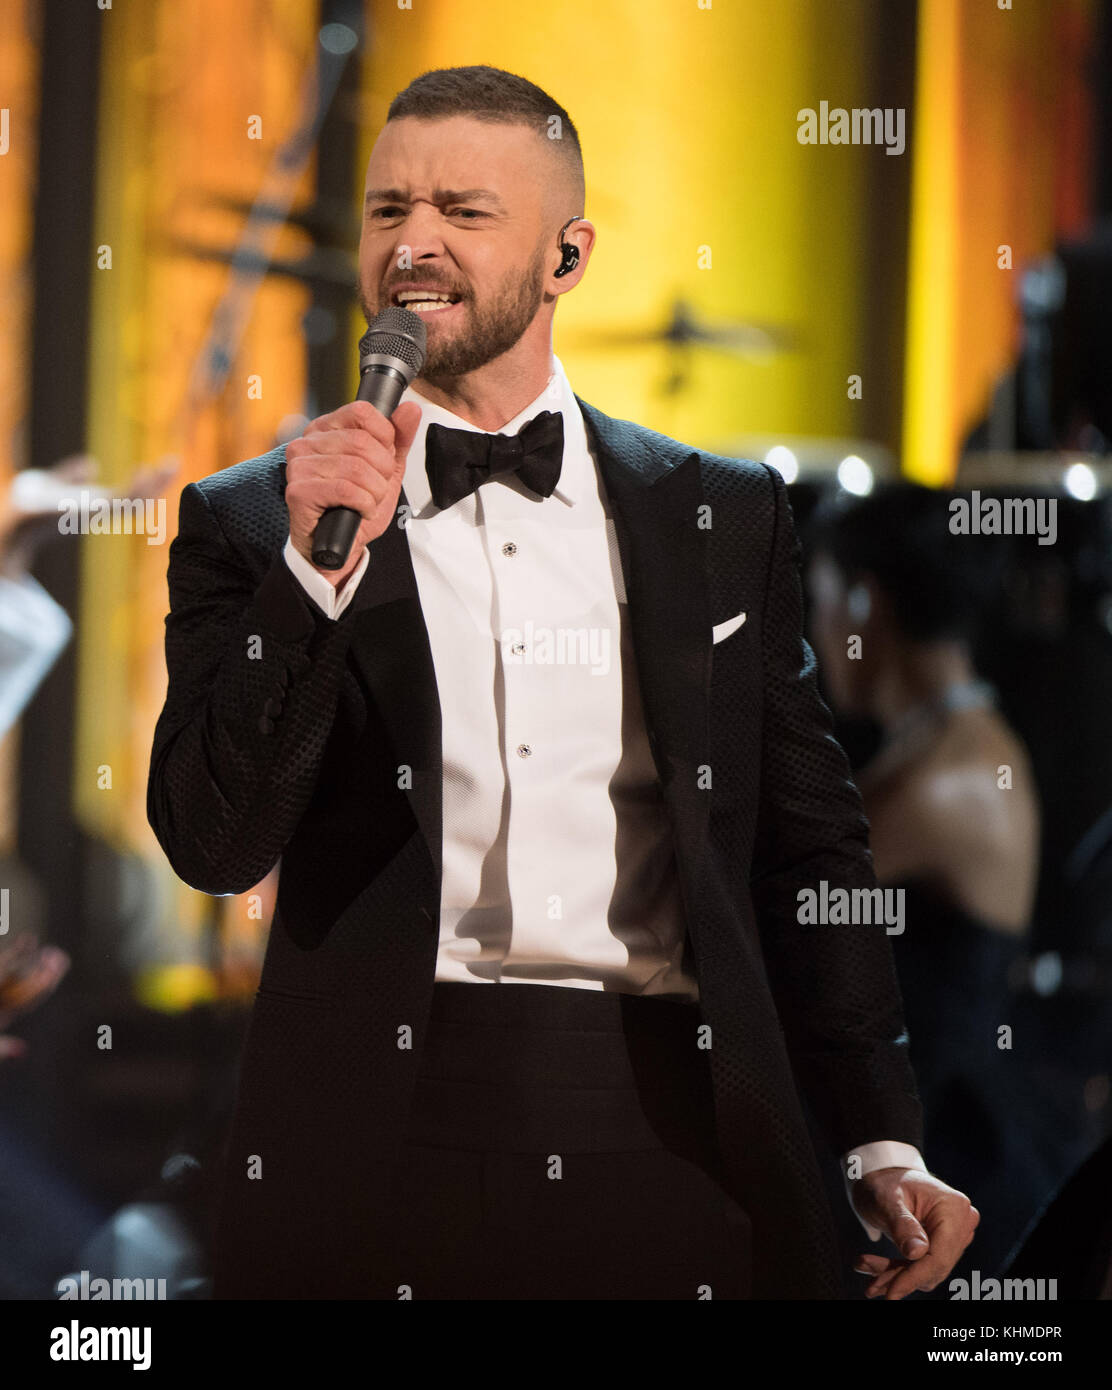 Hollywood, CA - 26 febbraio: Justin Timberlake assiste l'ottantanovesimo annuale di Academy Awards di Hollywood Foto Stock